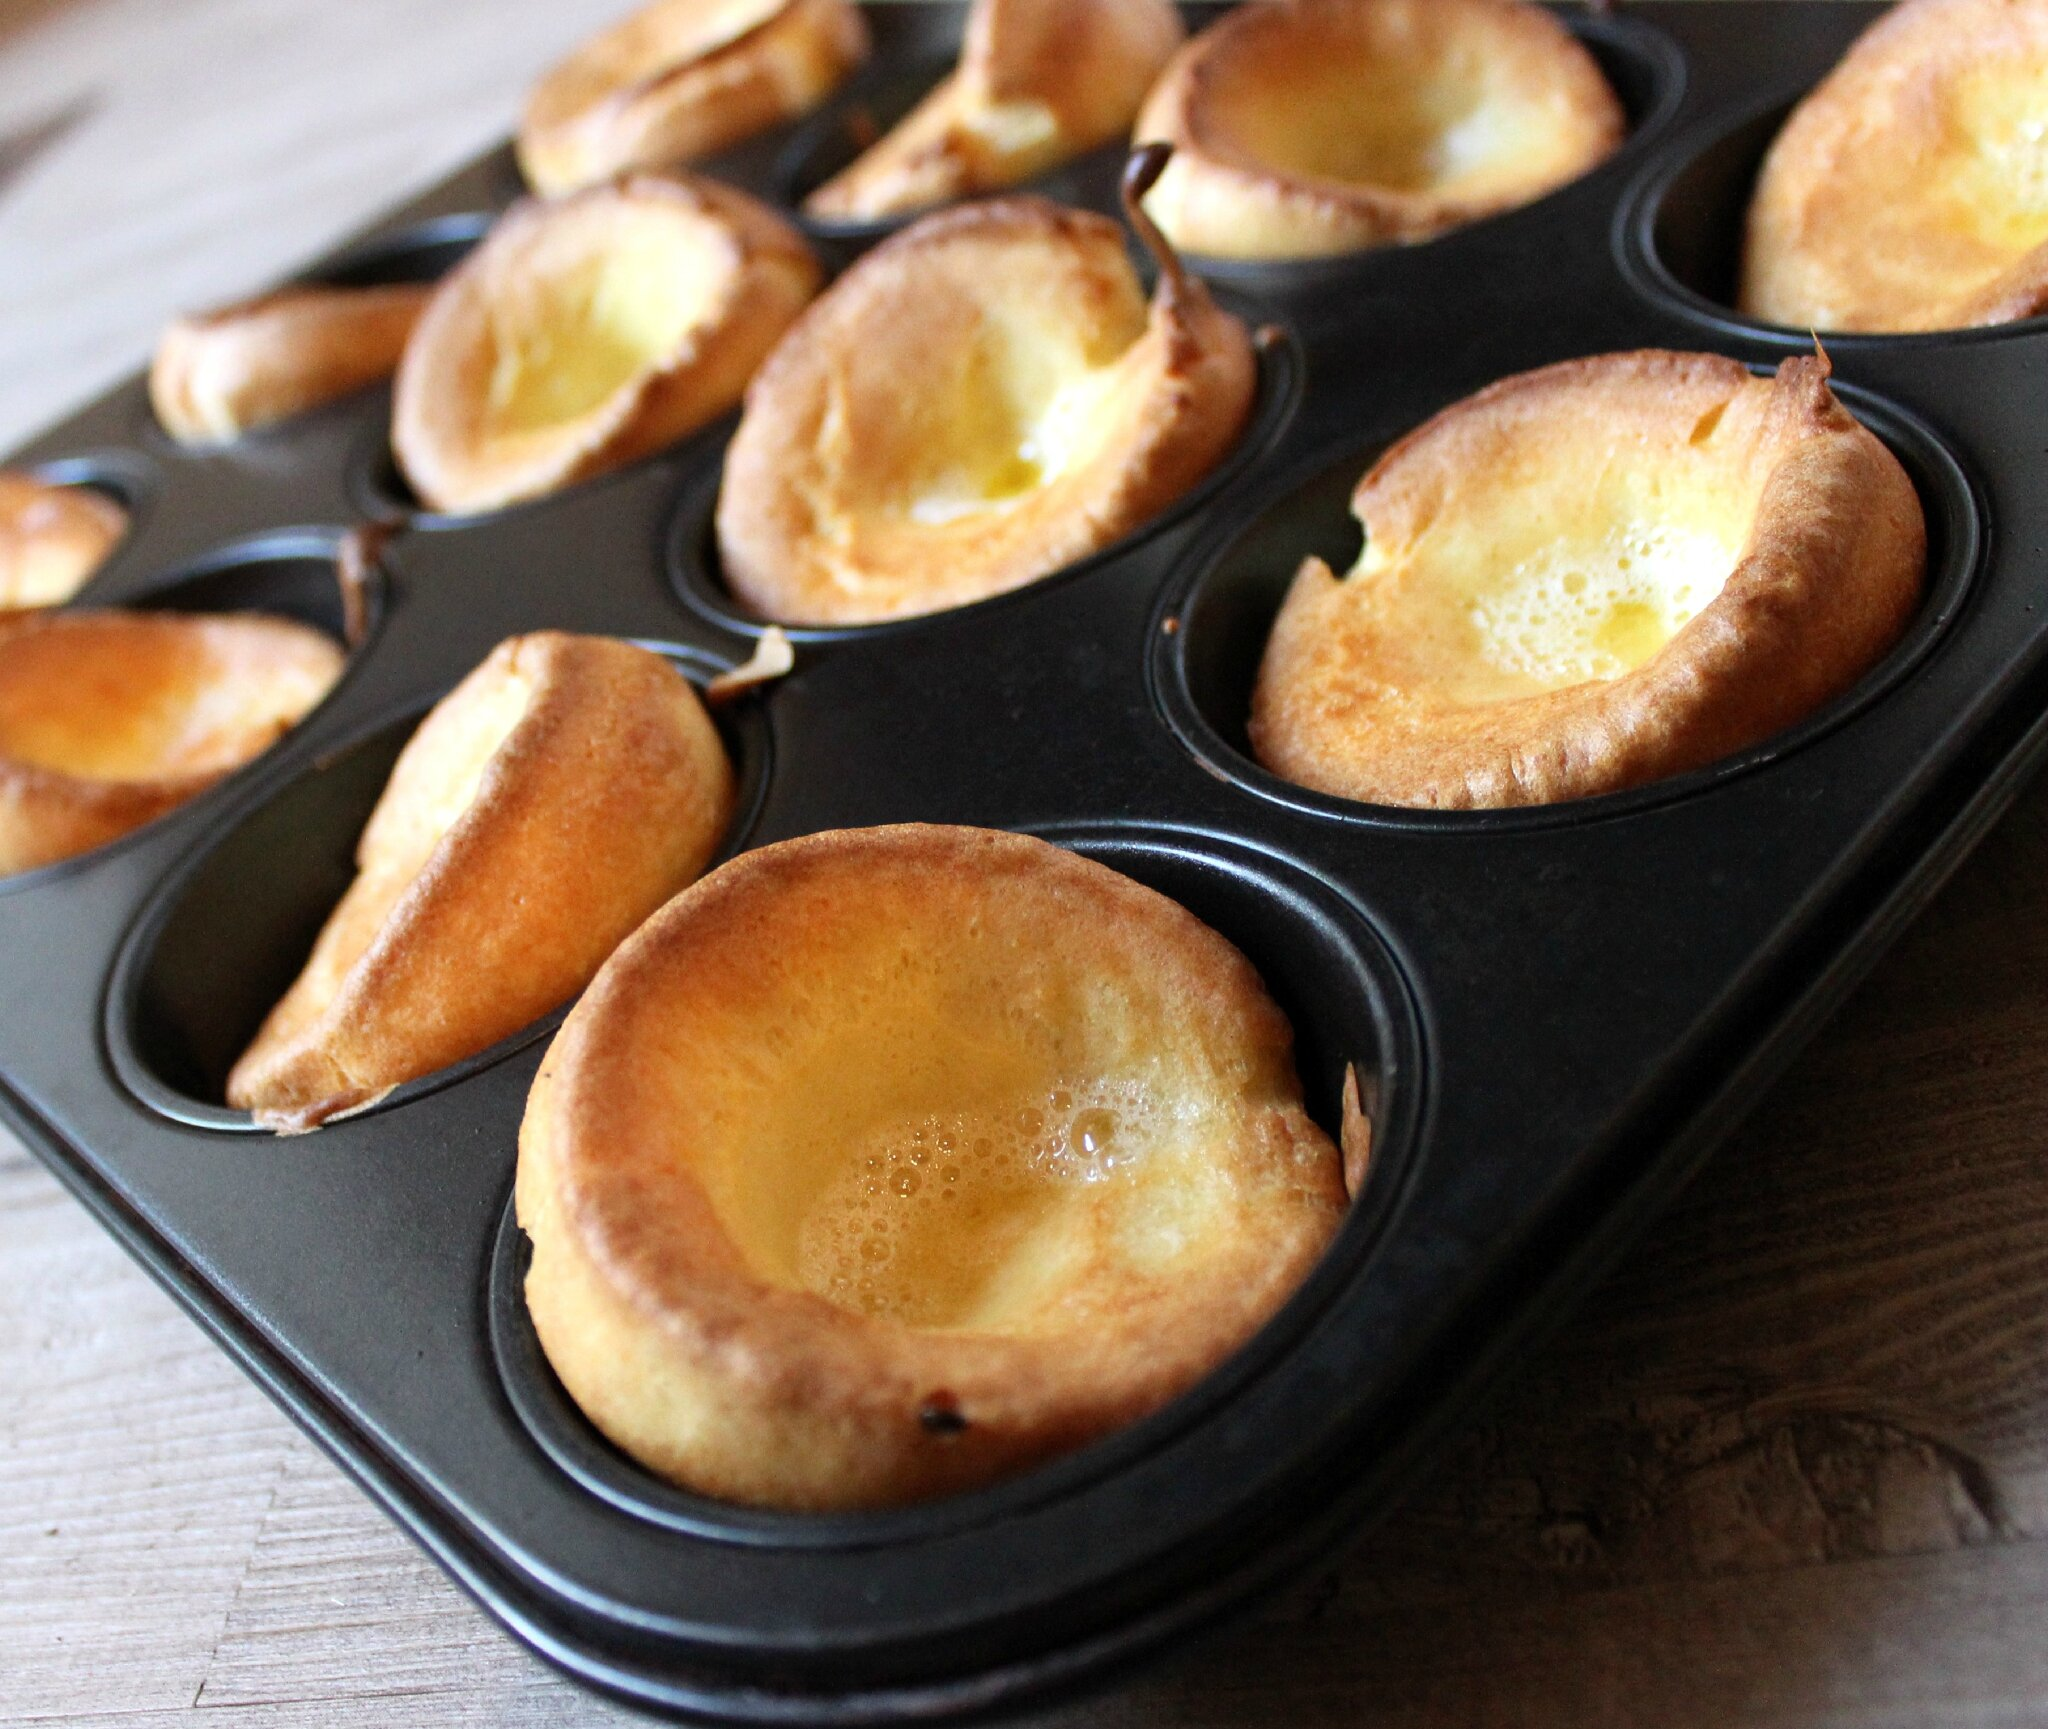 Yorkshire pudding recette anglaise d licieuse simple faire for Anglaise cuisine